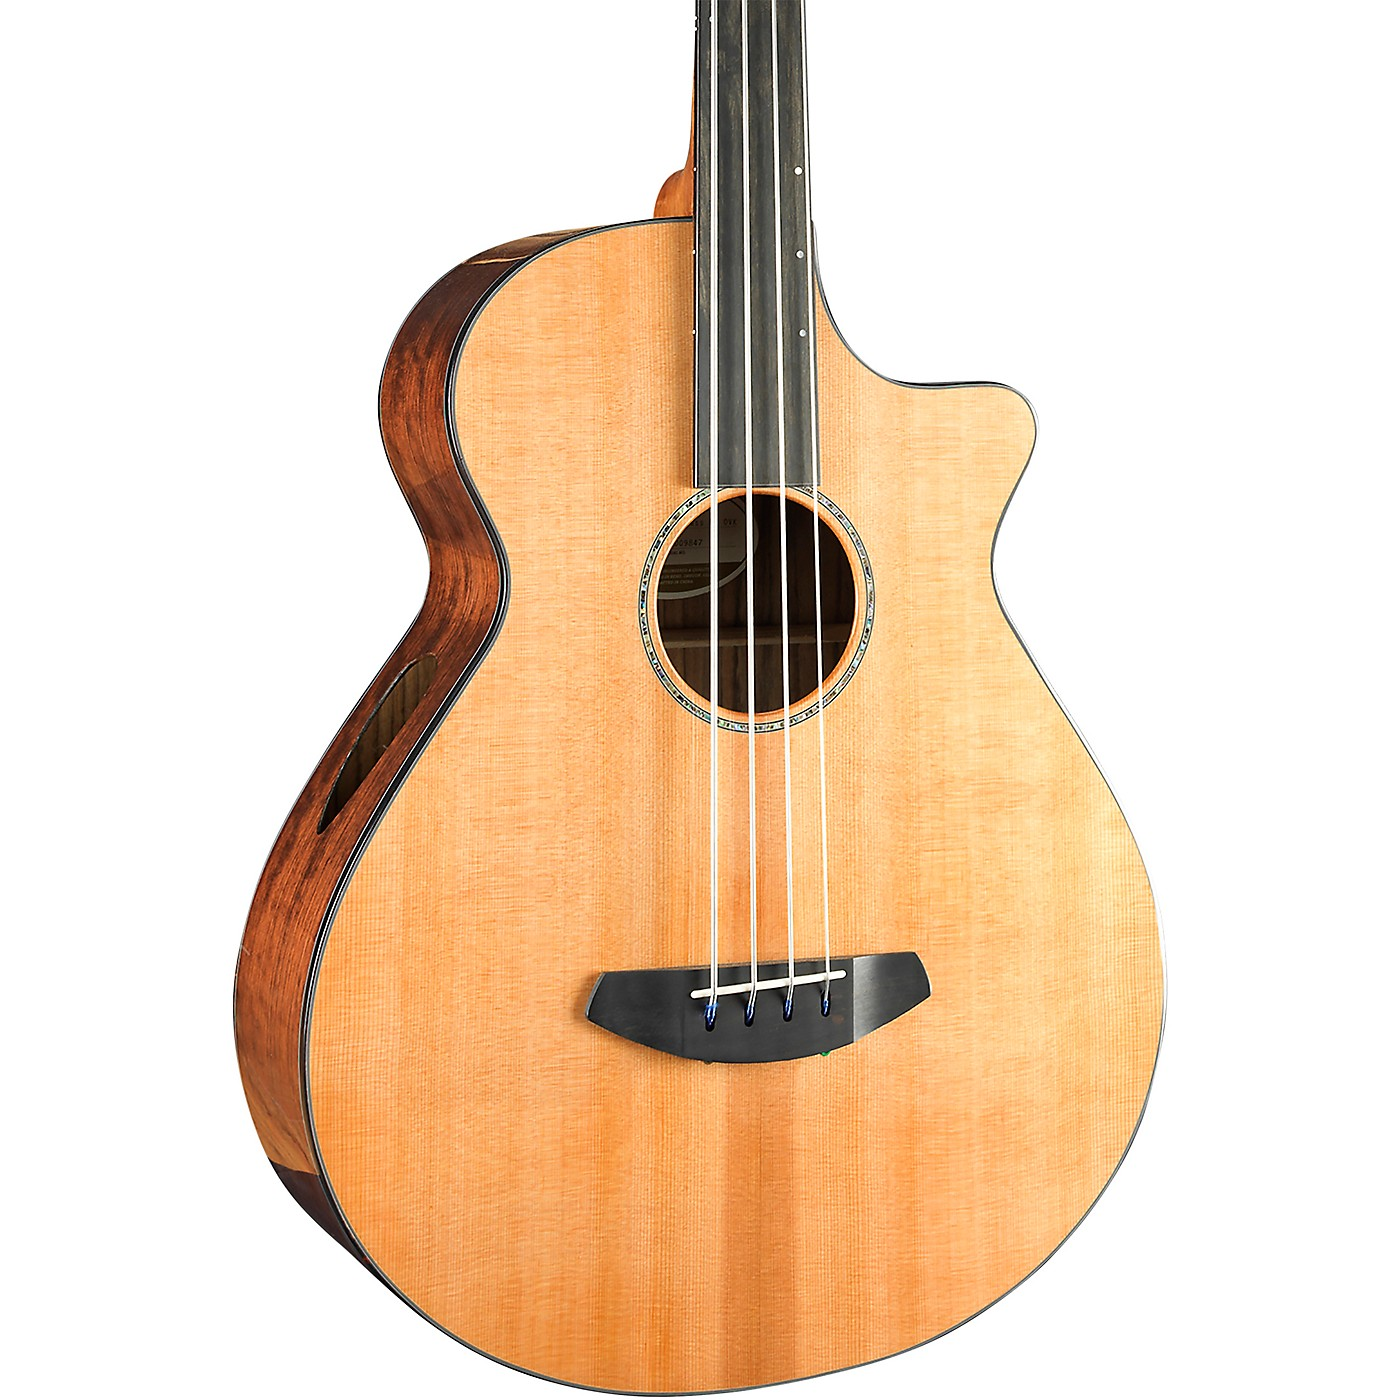 Breedlove Solo Jumbo Fretless Cutaway CE Acoustic-Electric Bass Guitar thumbnail